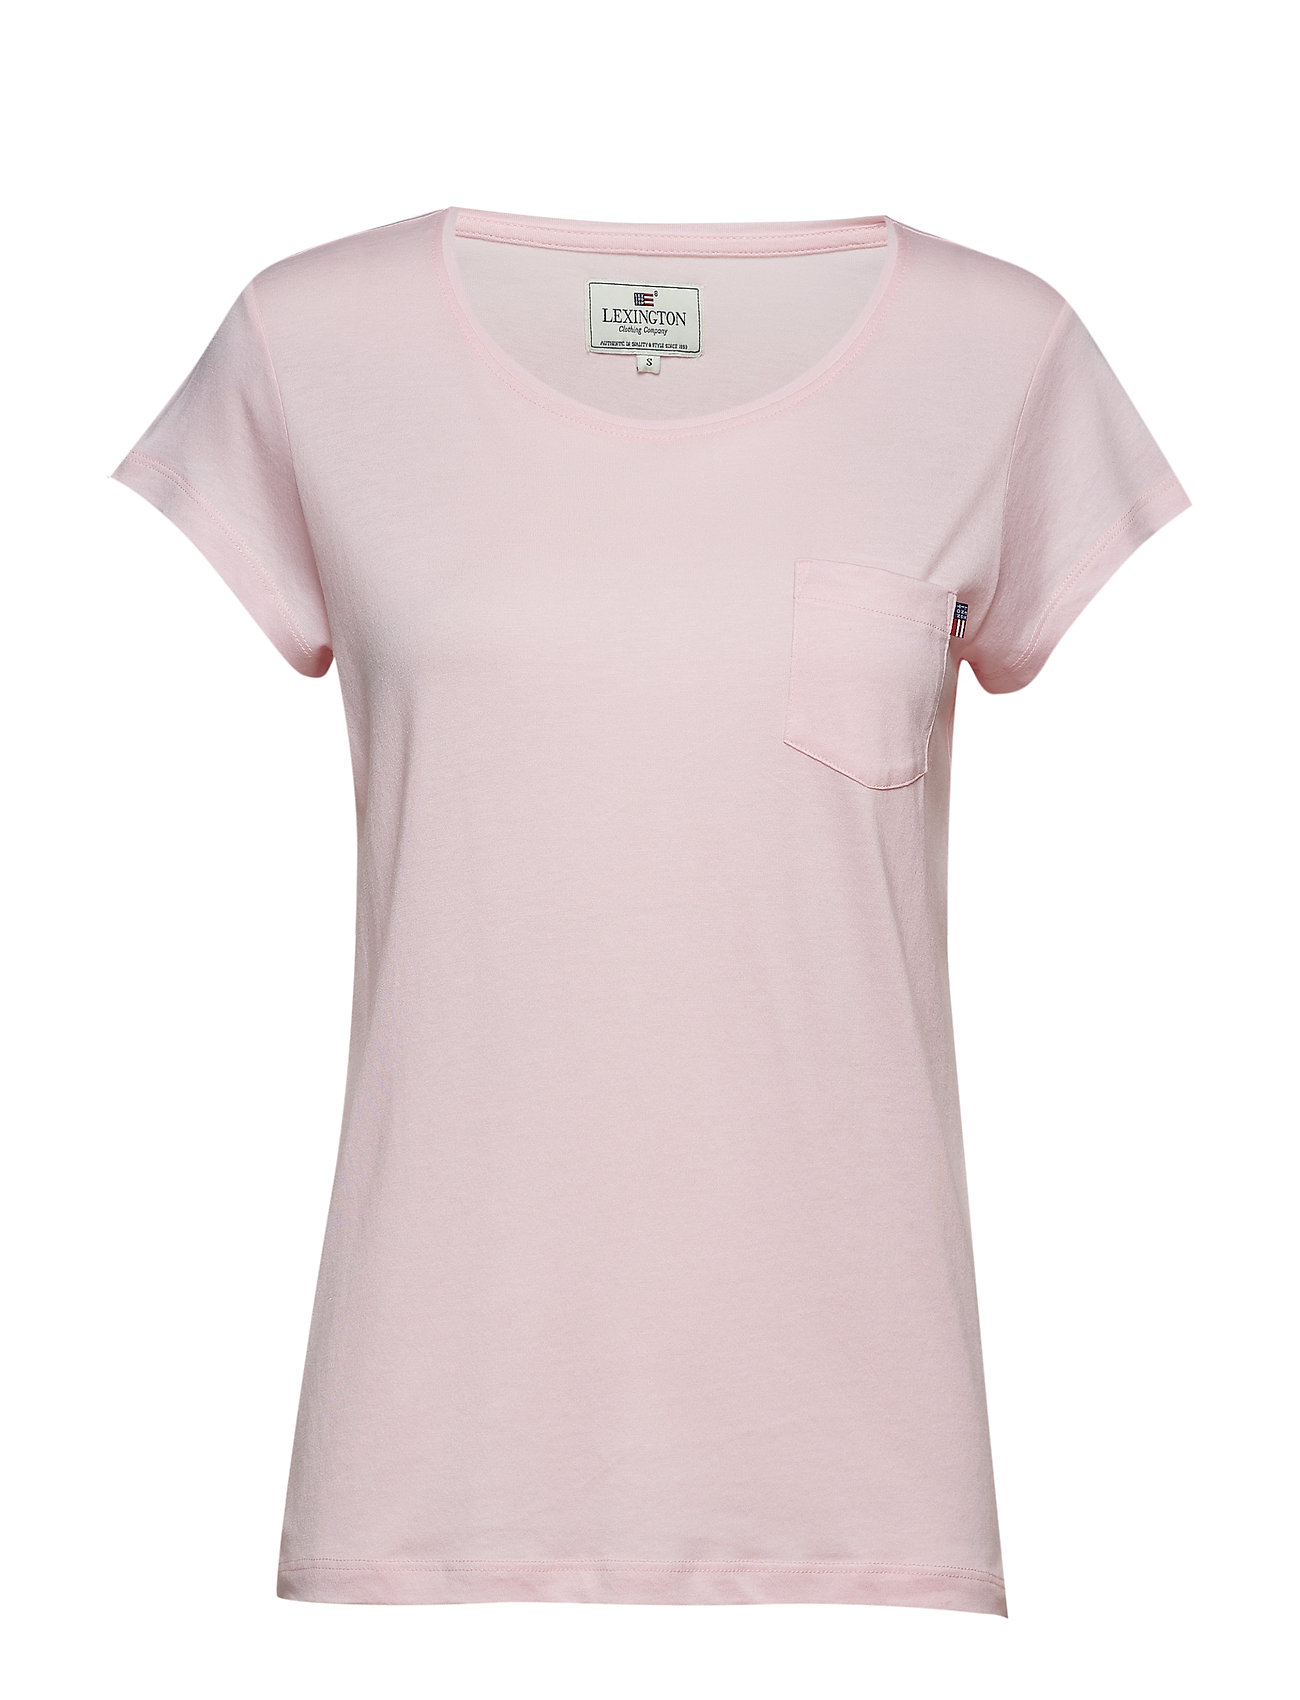 Lexington Clothing Ashley Jersey Tee